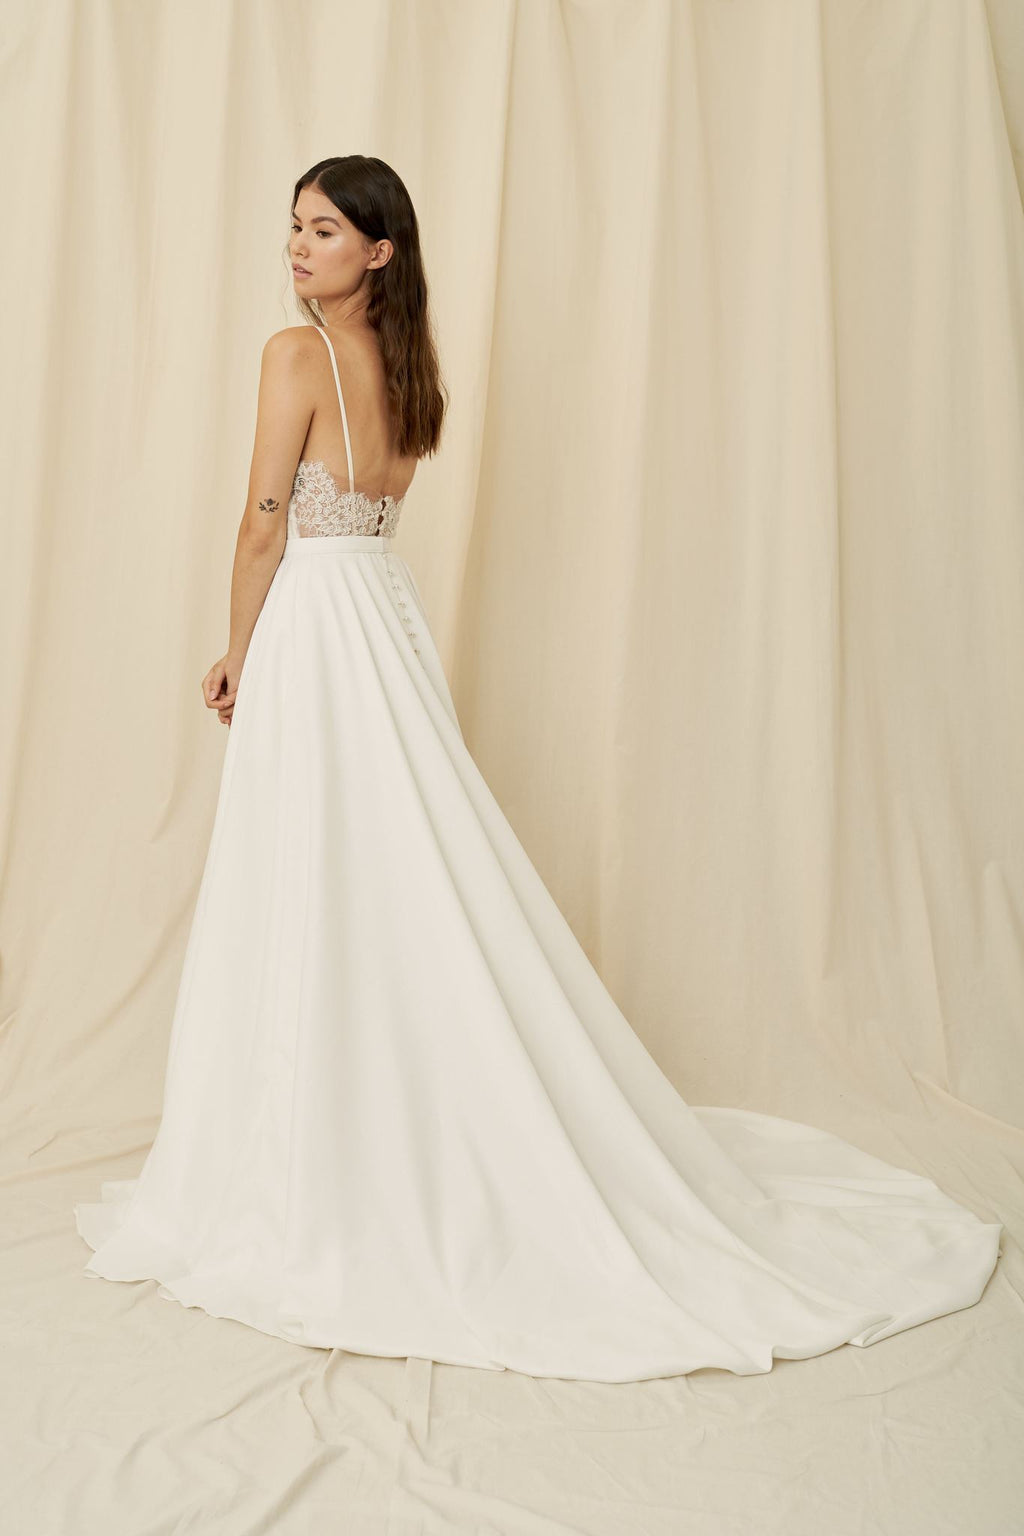 Where to buy affordable wedding dresses in Calgary and Vancouver